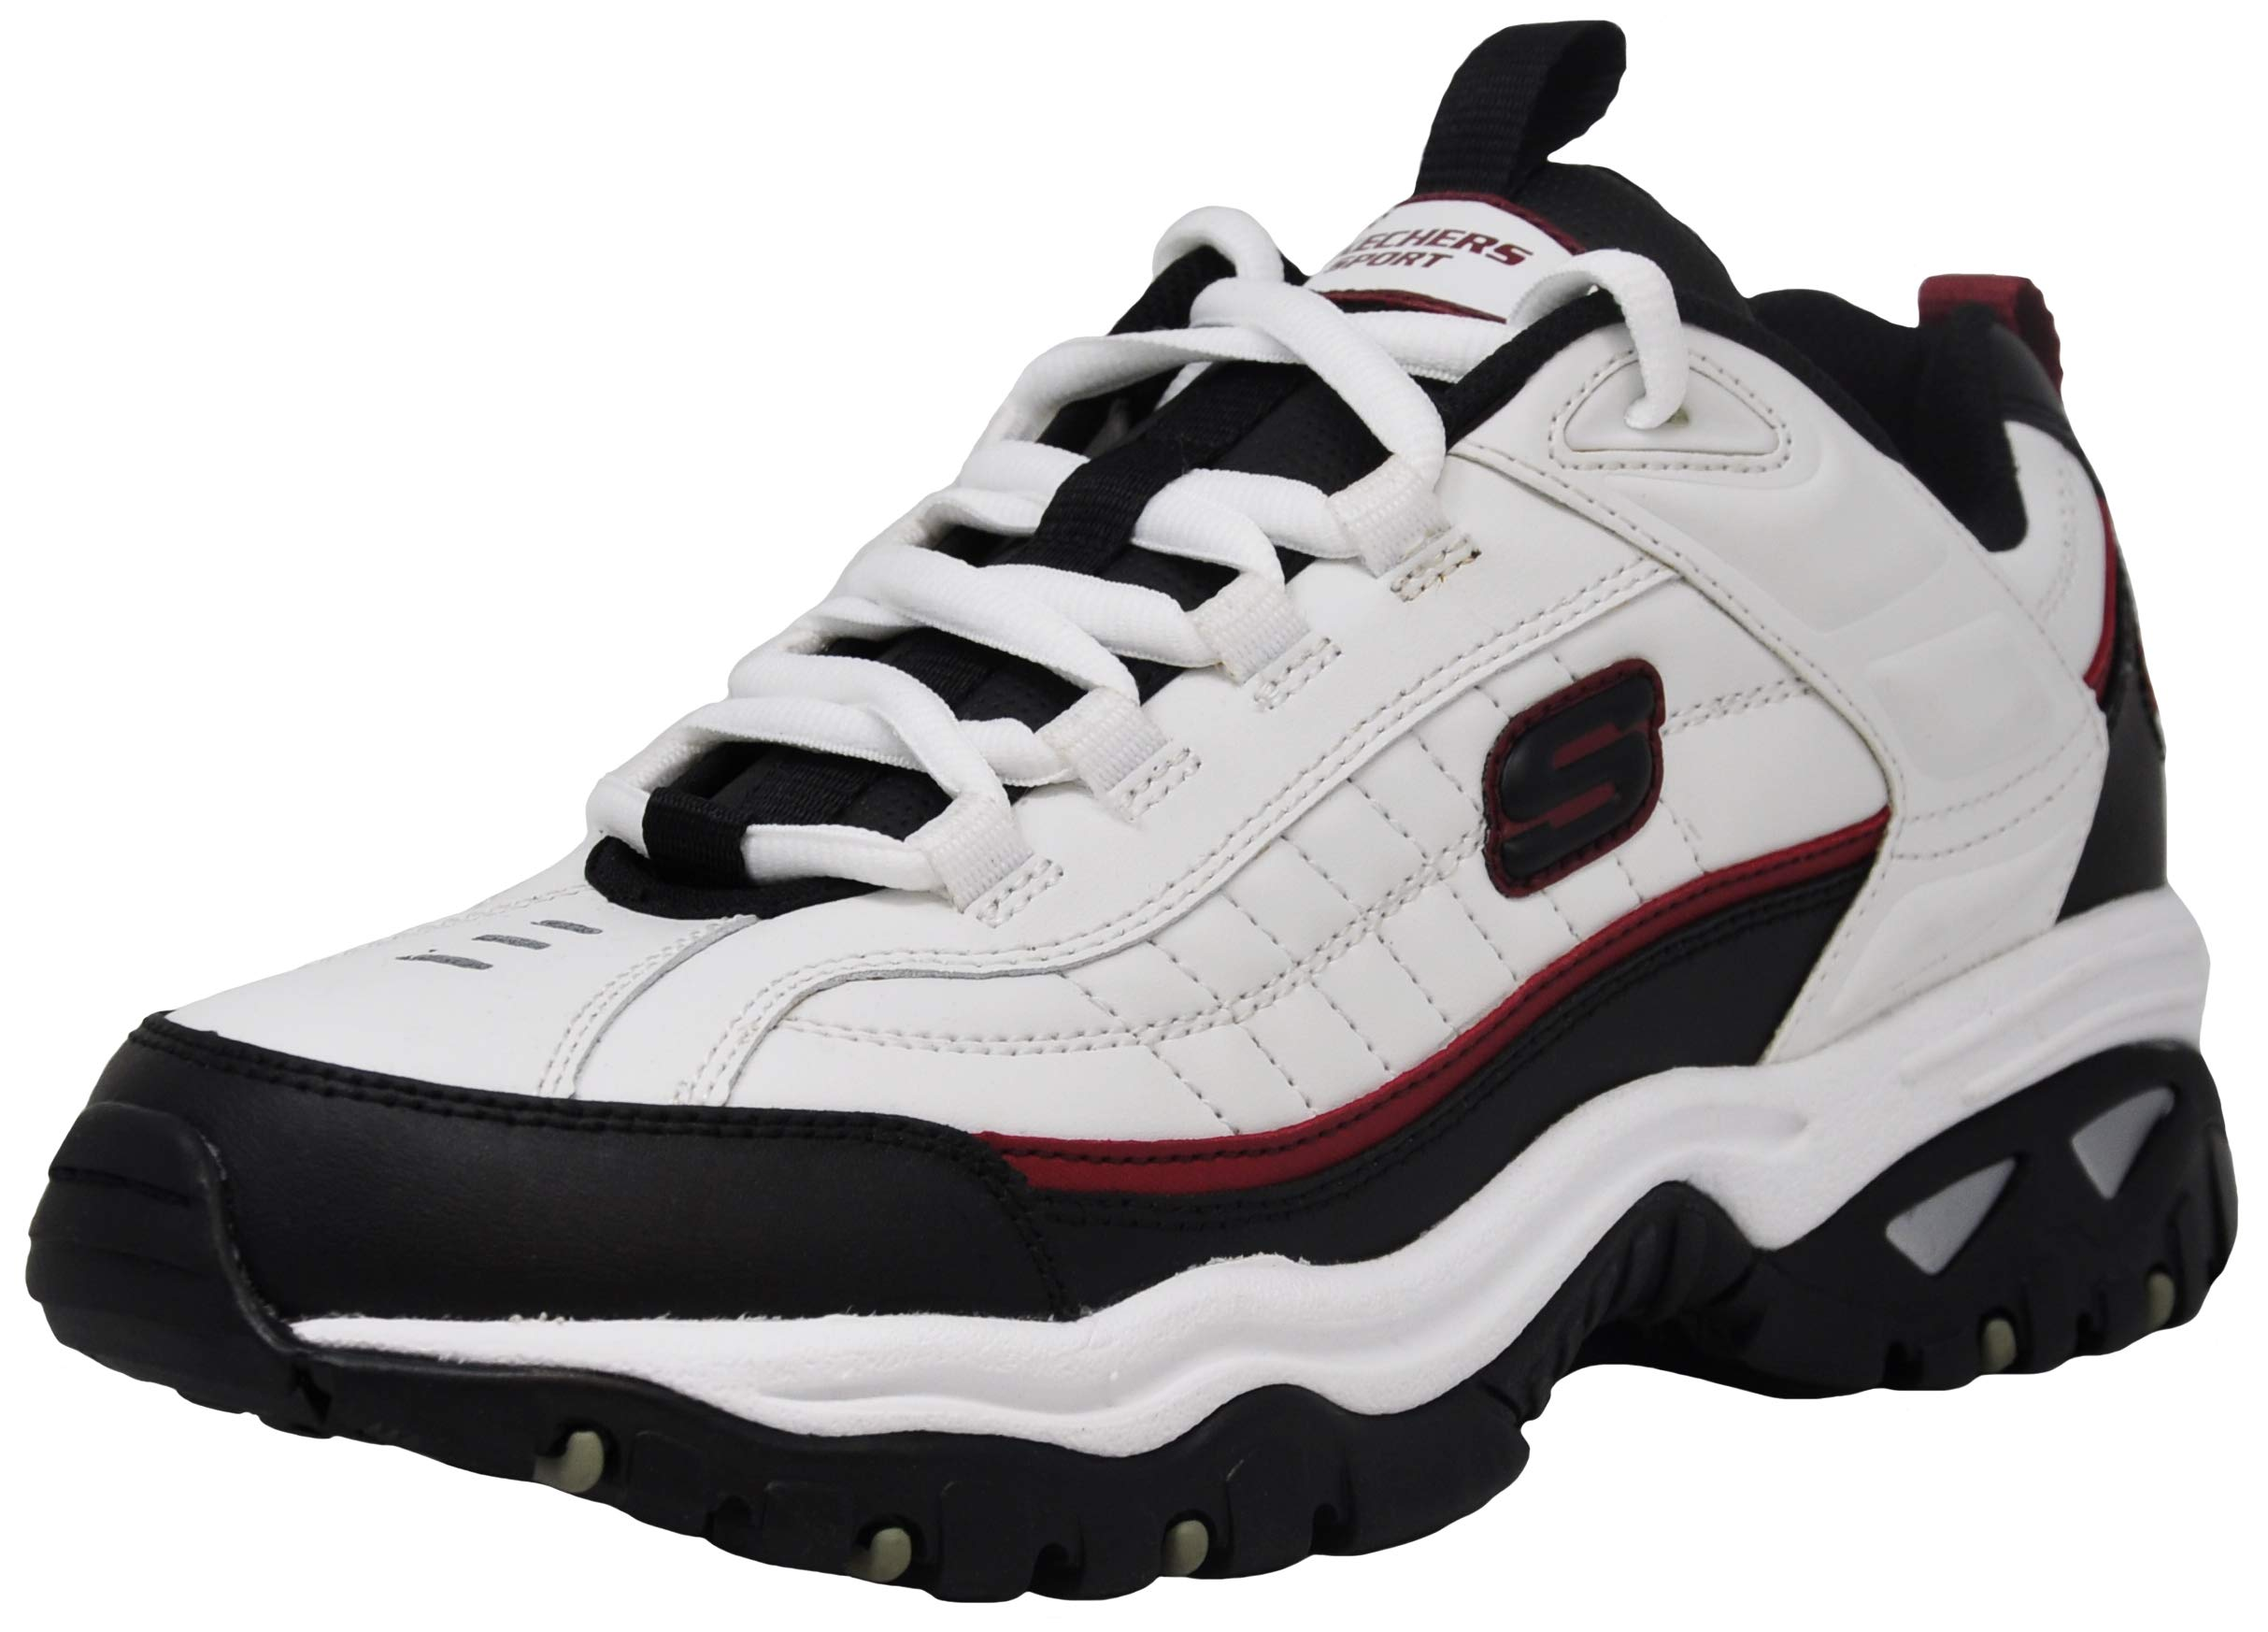 Skechers Men's Energy Afterburn Sneaker, White/Black/Red 11.5 M US by Skechers